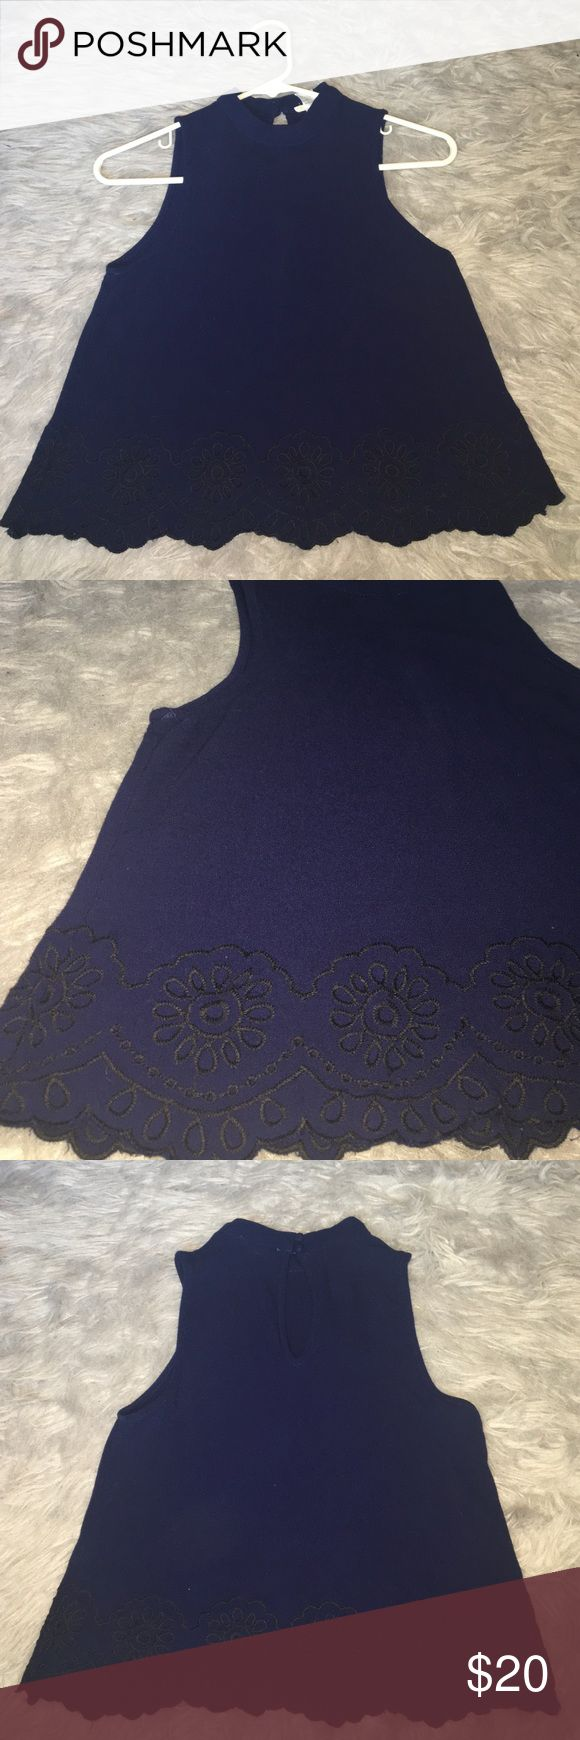 Navy blue crop top Beautiful navy blue cropped blouse with threaded flower embellishments. The neckline has additional vintage inspired button clasps. inTu Tops Crop Tops